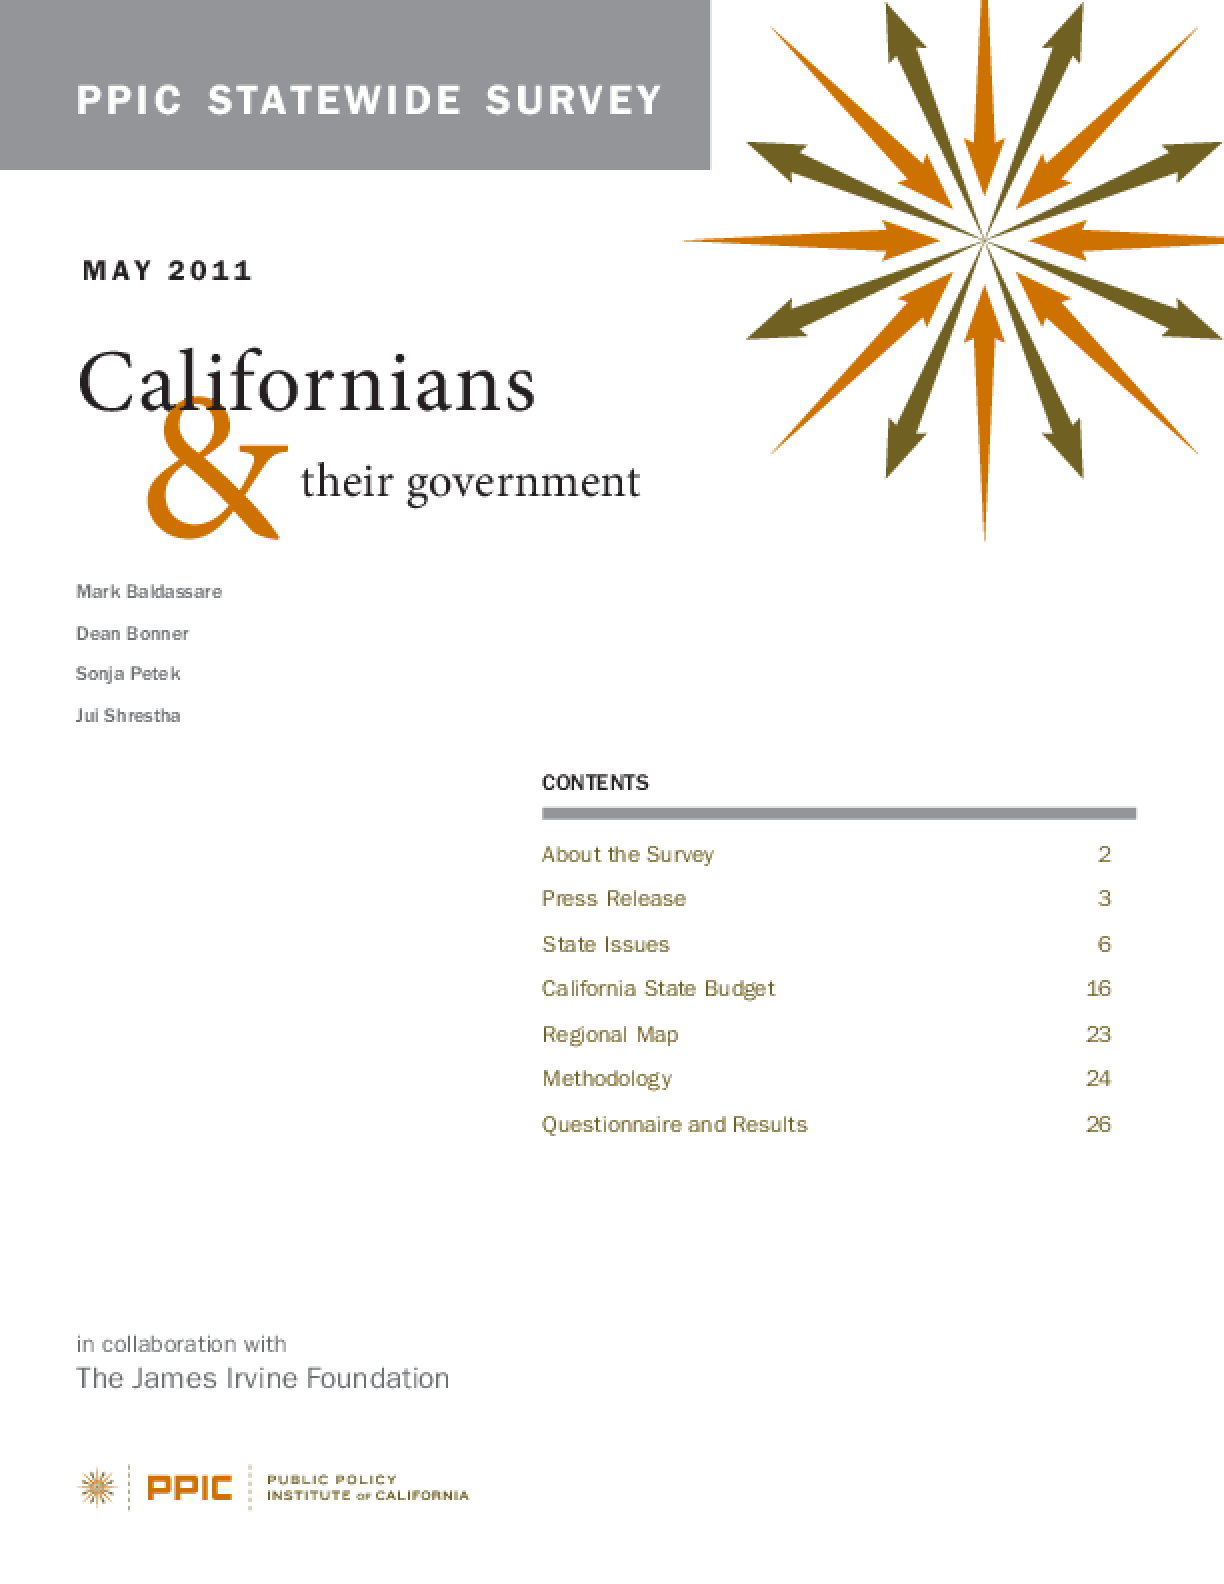 PPIC Statewide Survey: Californians and Their Government May 2011